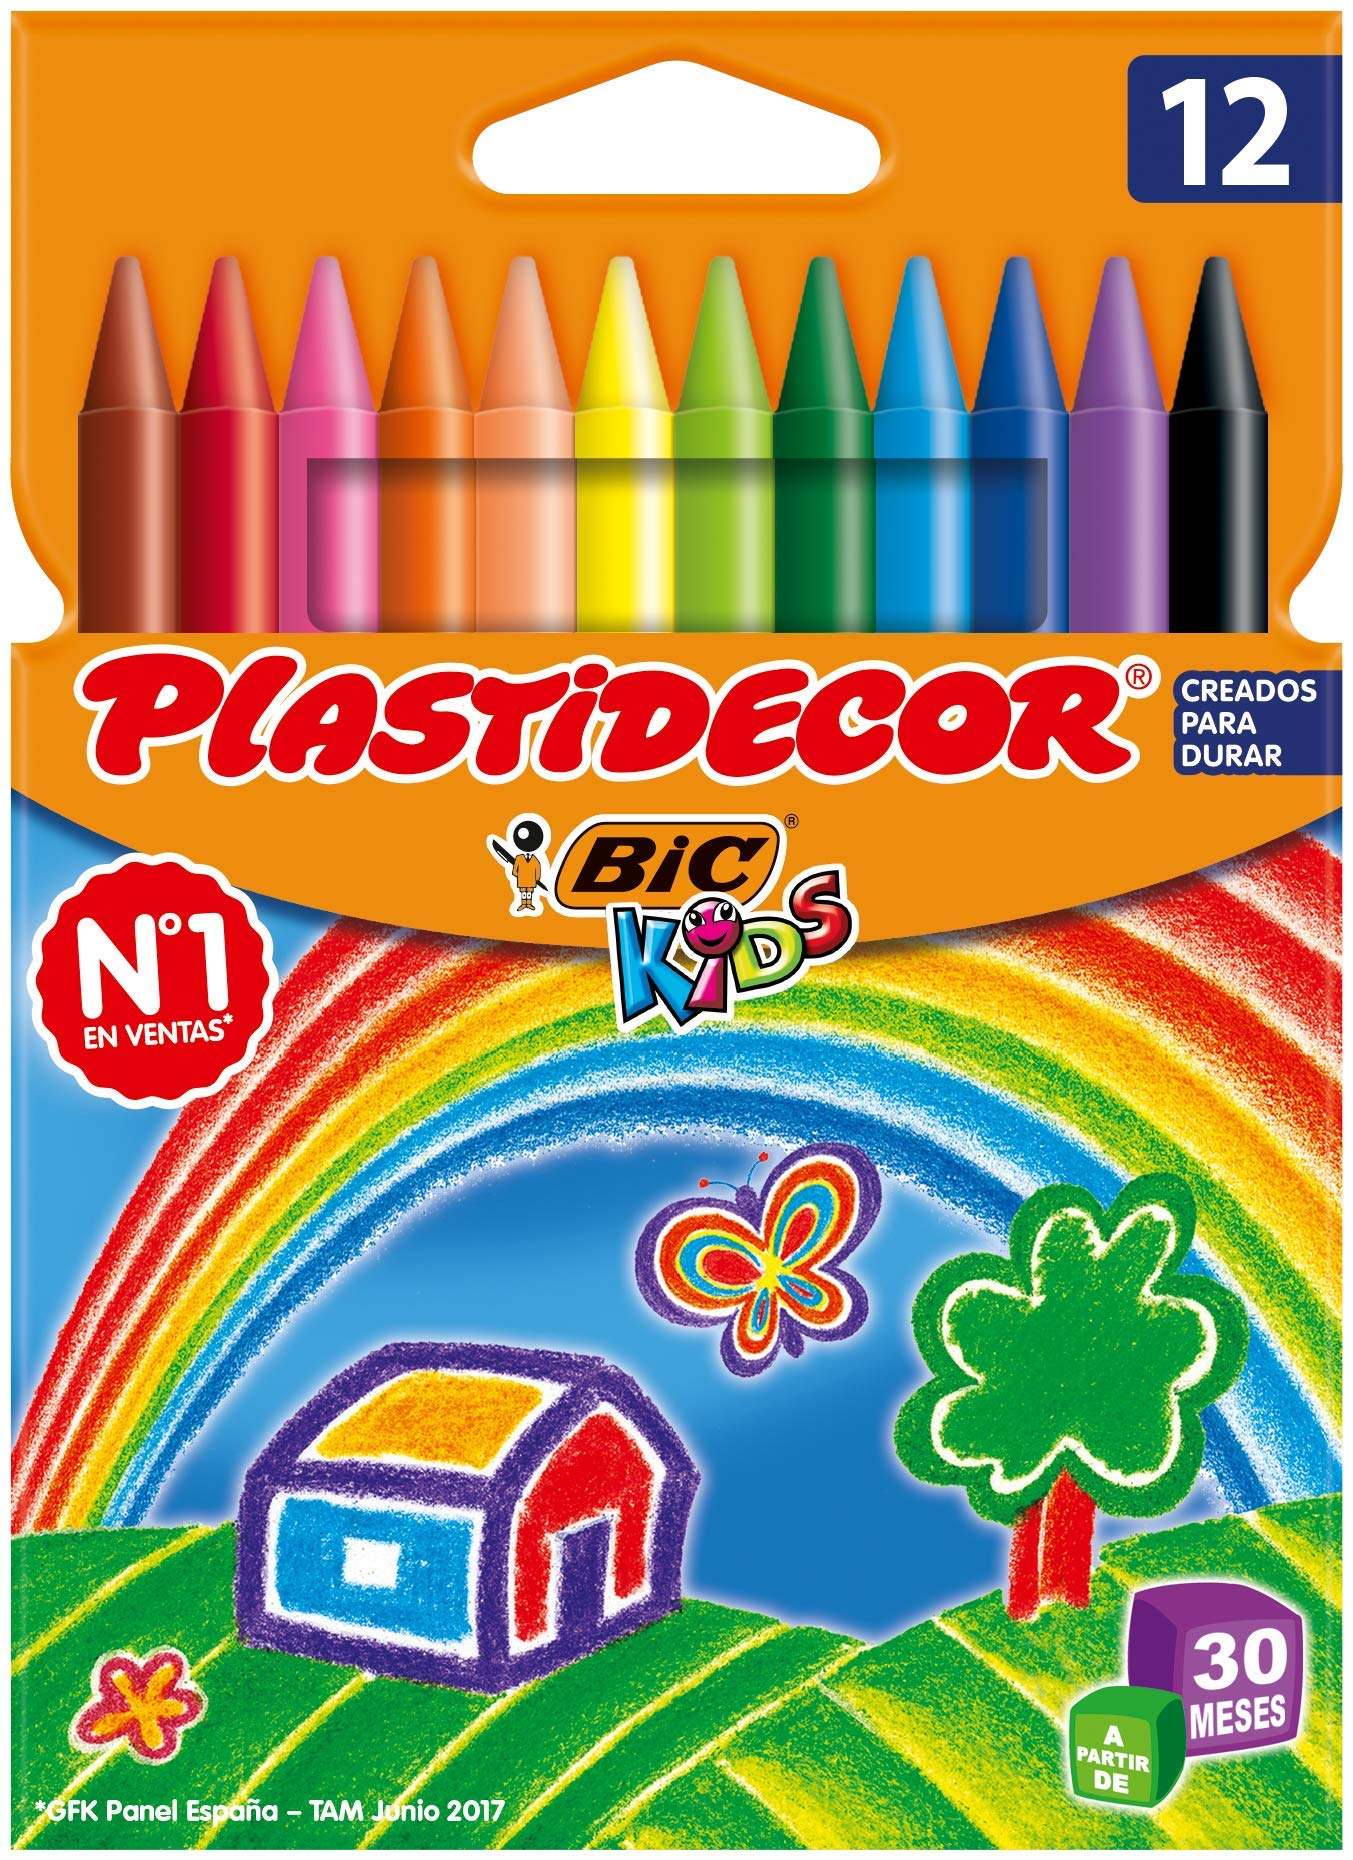 Bic Plastidecor – Ceras de colores, pack de 12